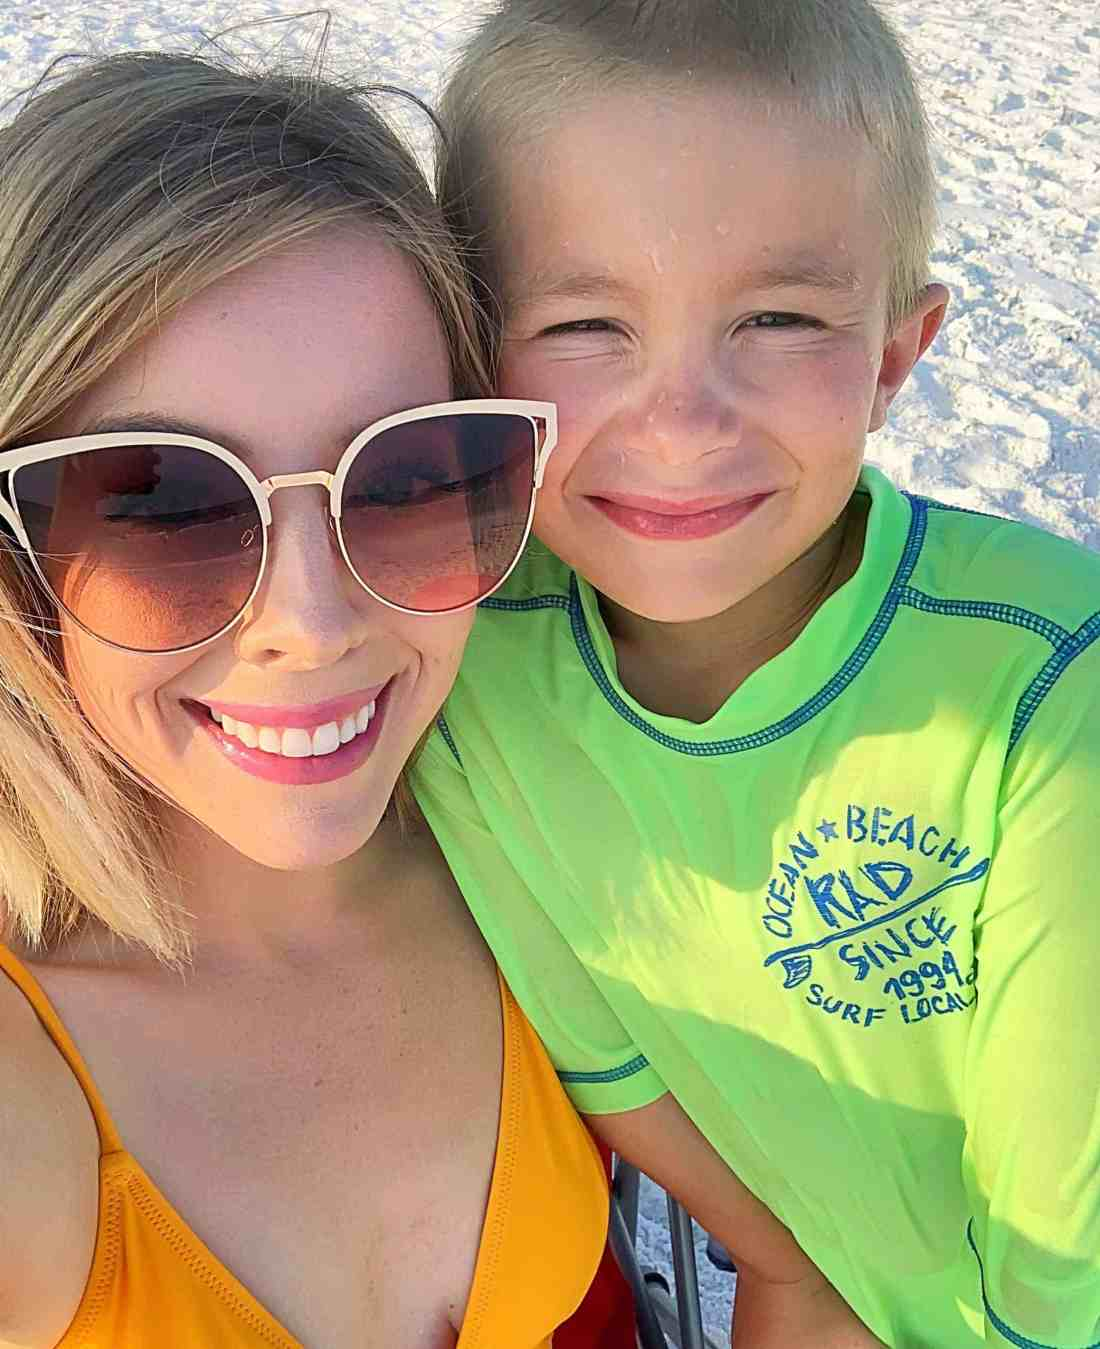 Sharing a recap of our family's first florida beach vacation to Seagrove Beach, FL. Check out the gorgeous beach, where we stayed, and what to see and do! #floridavacation #beachvacation #seagrovebeach